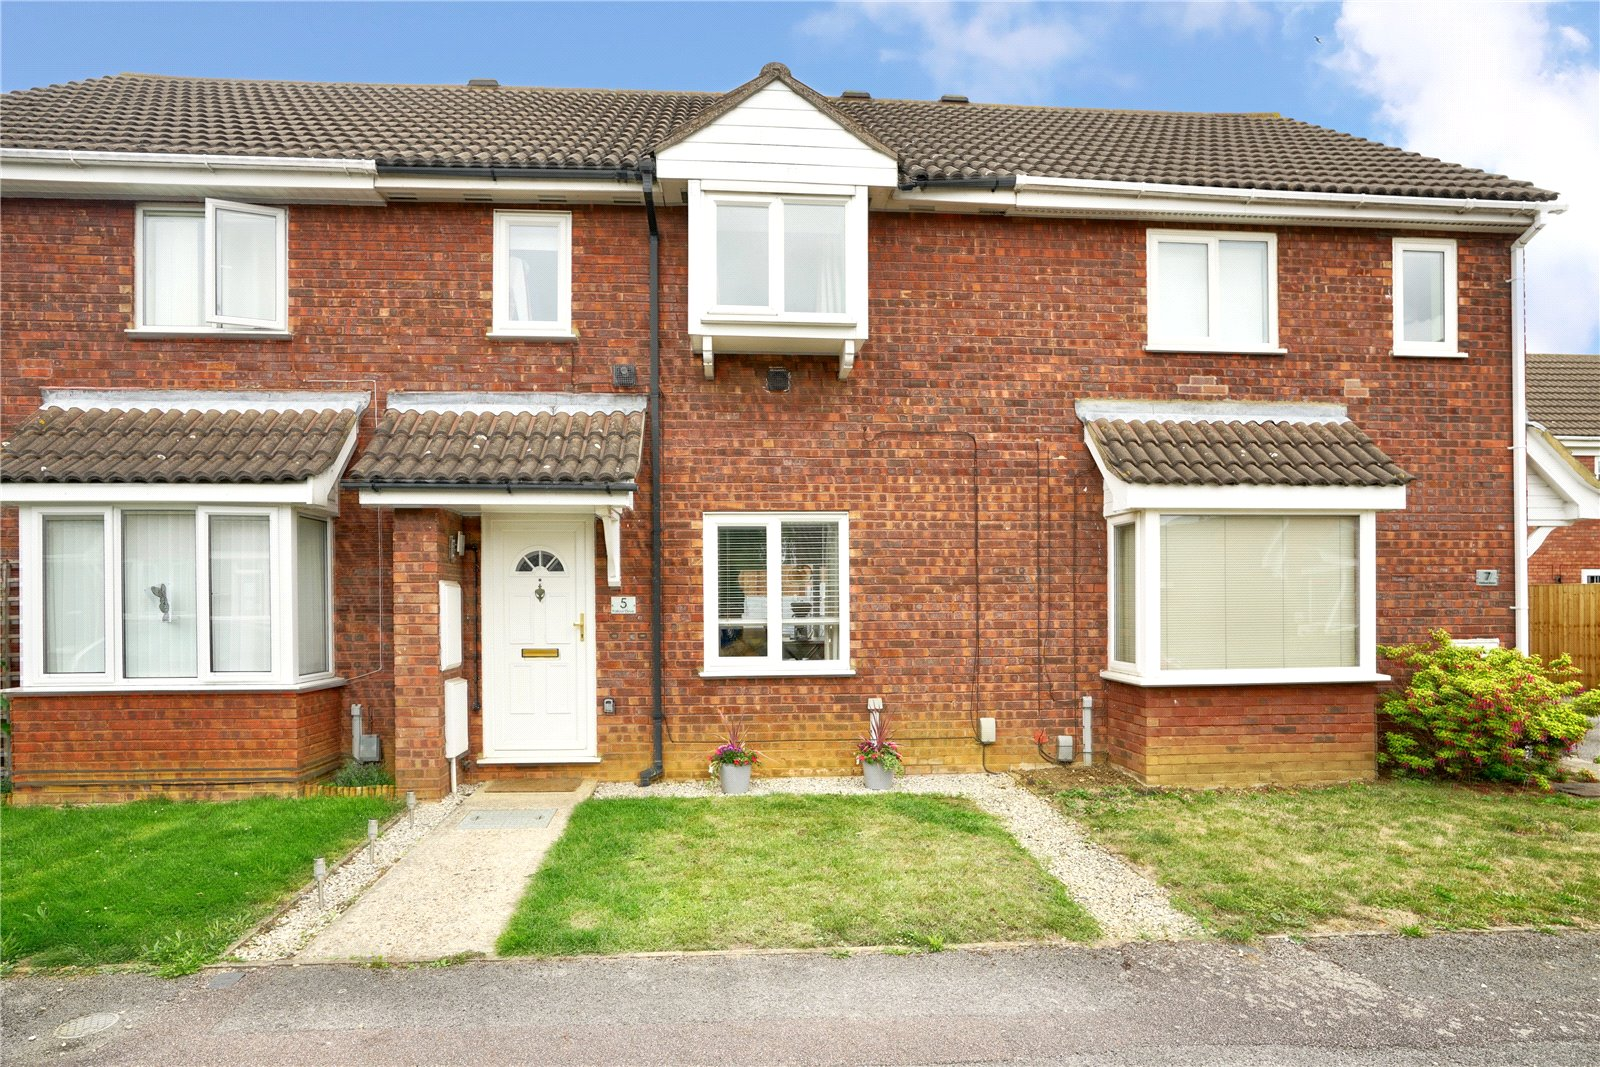 3 bed house for sale in Fallow Drive, Eaton Socon, PE19